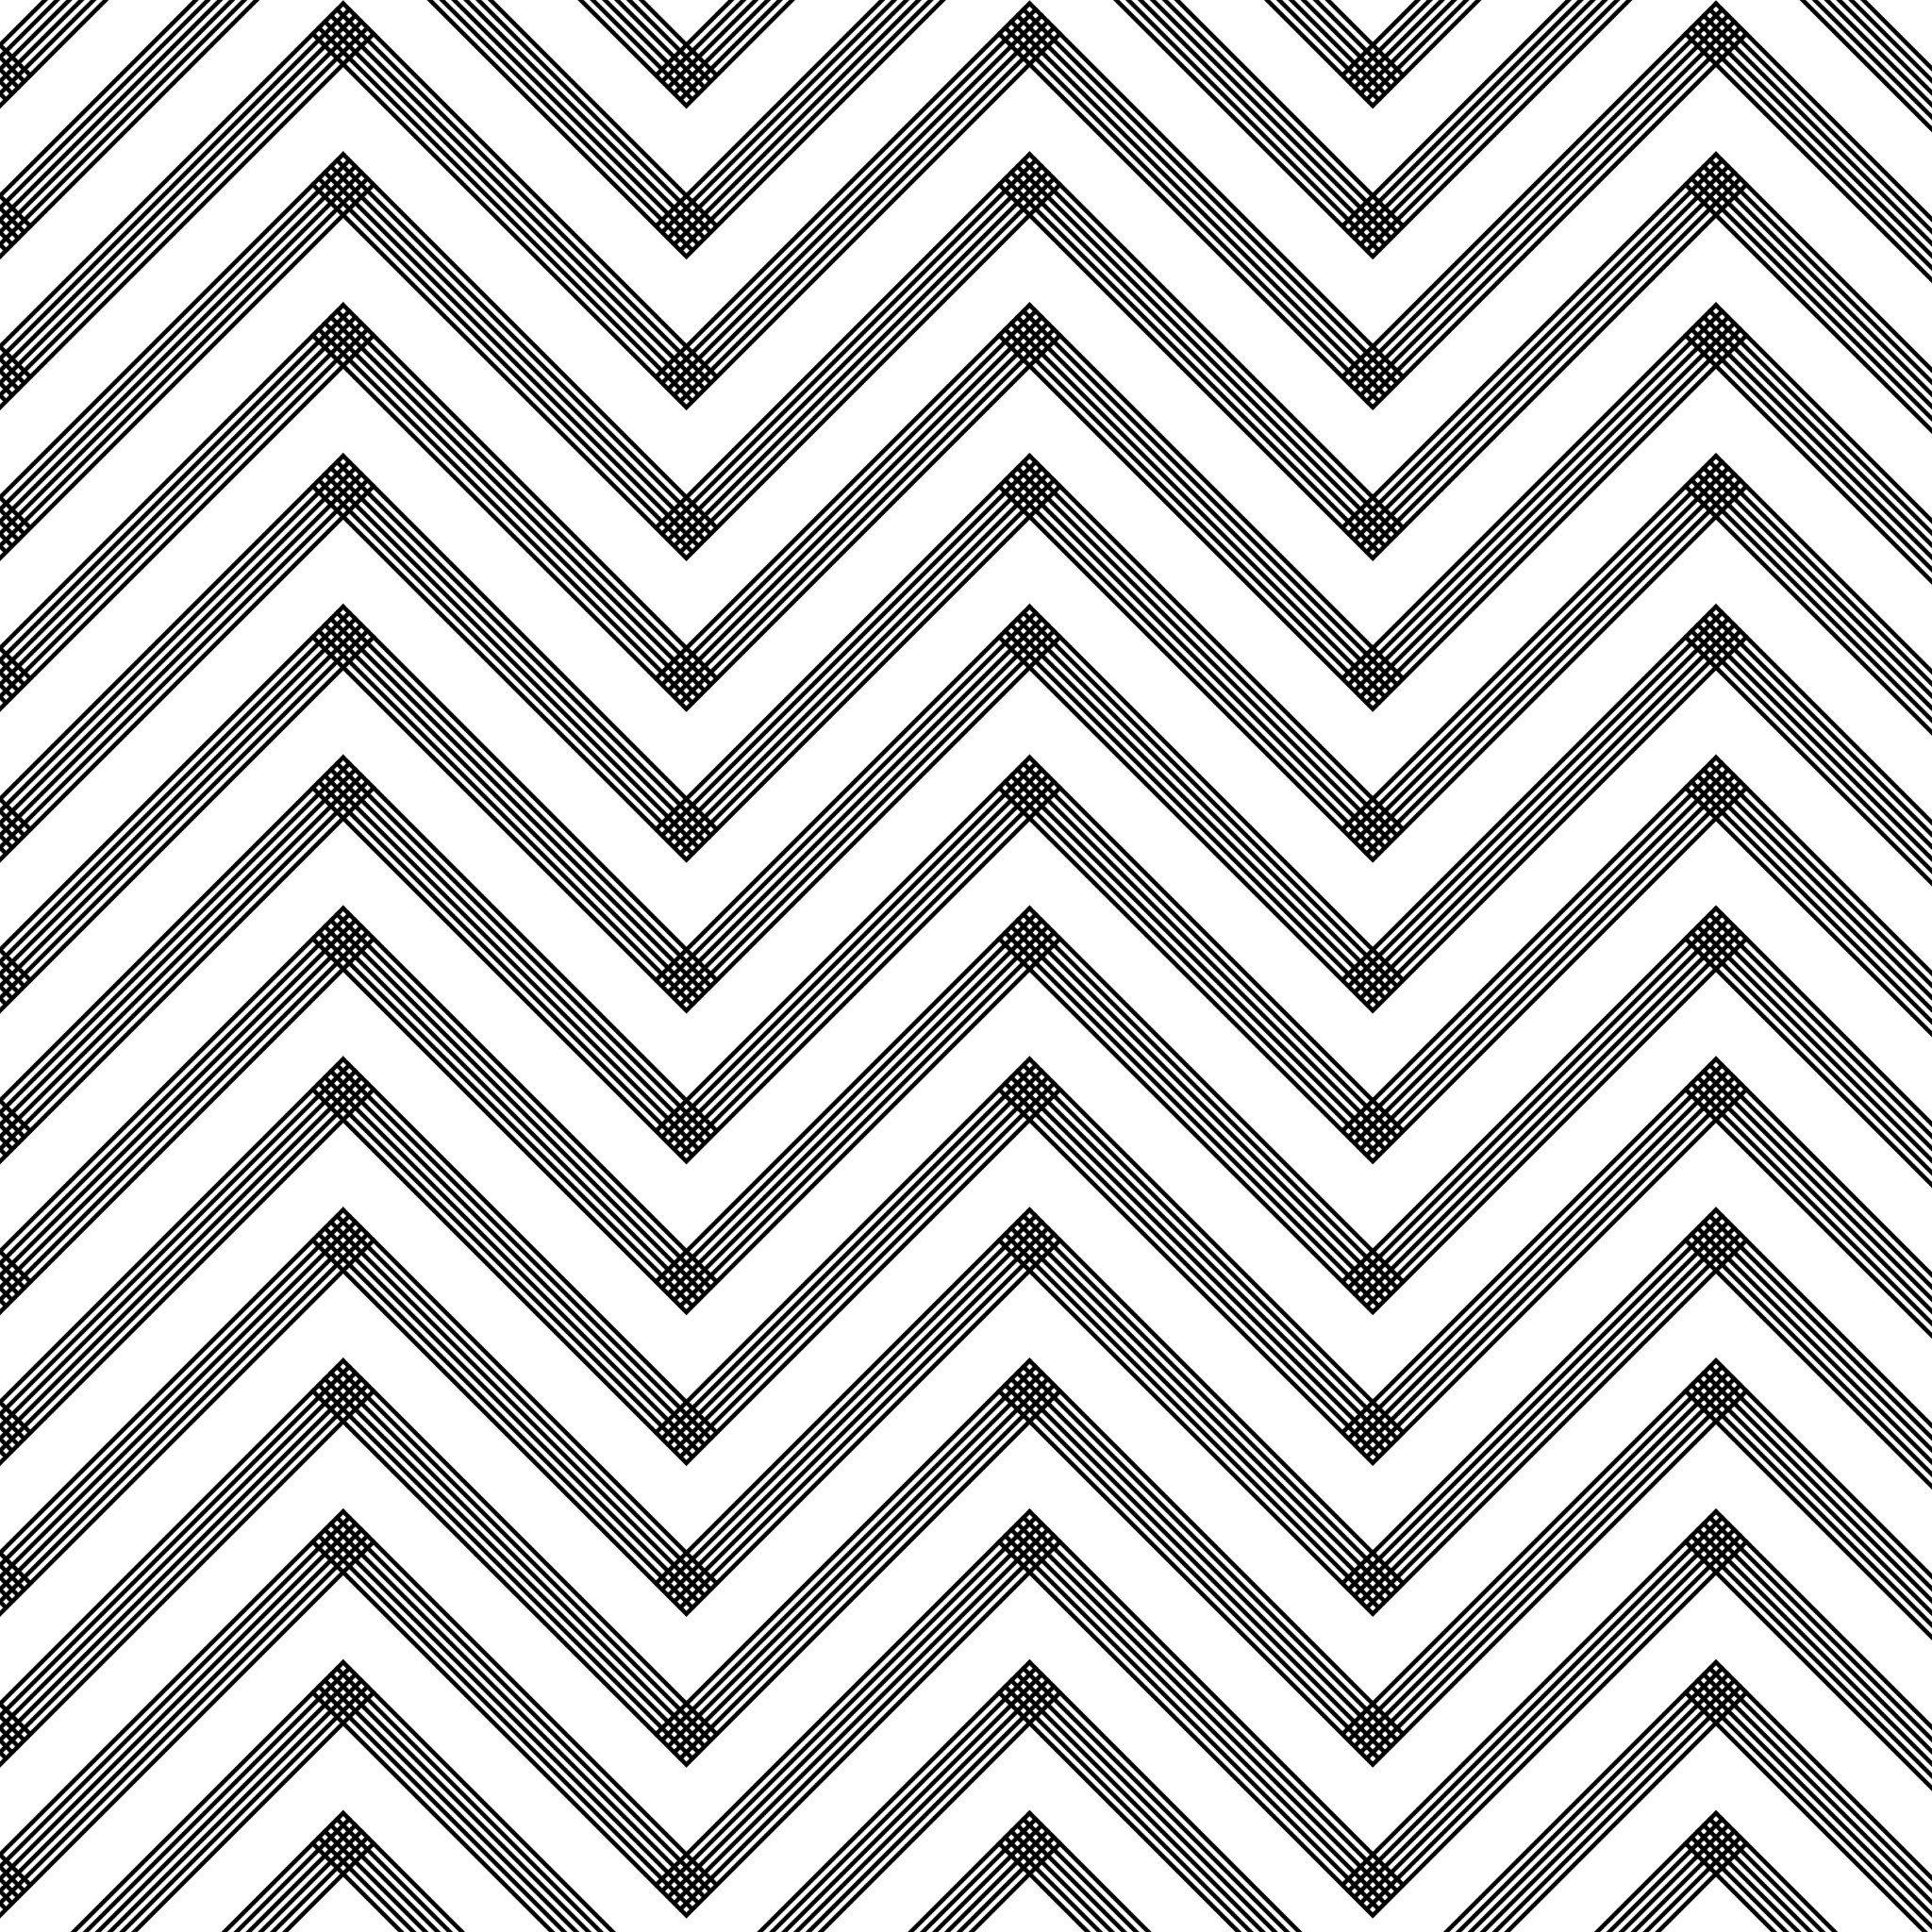 black and white chevron wallpaper